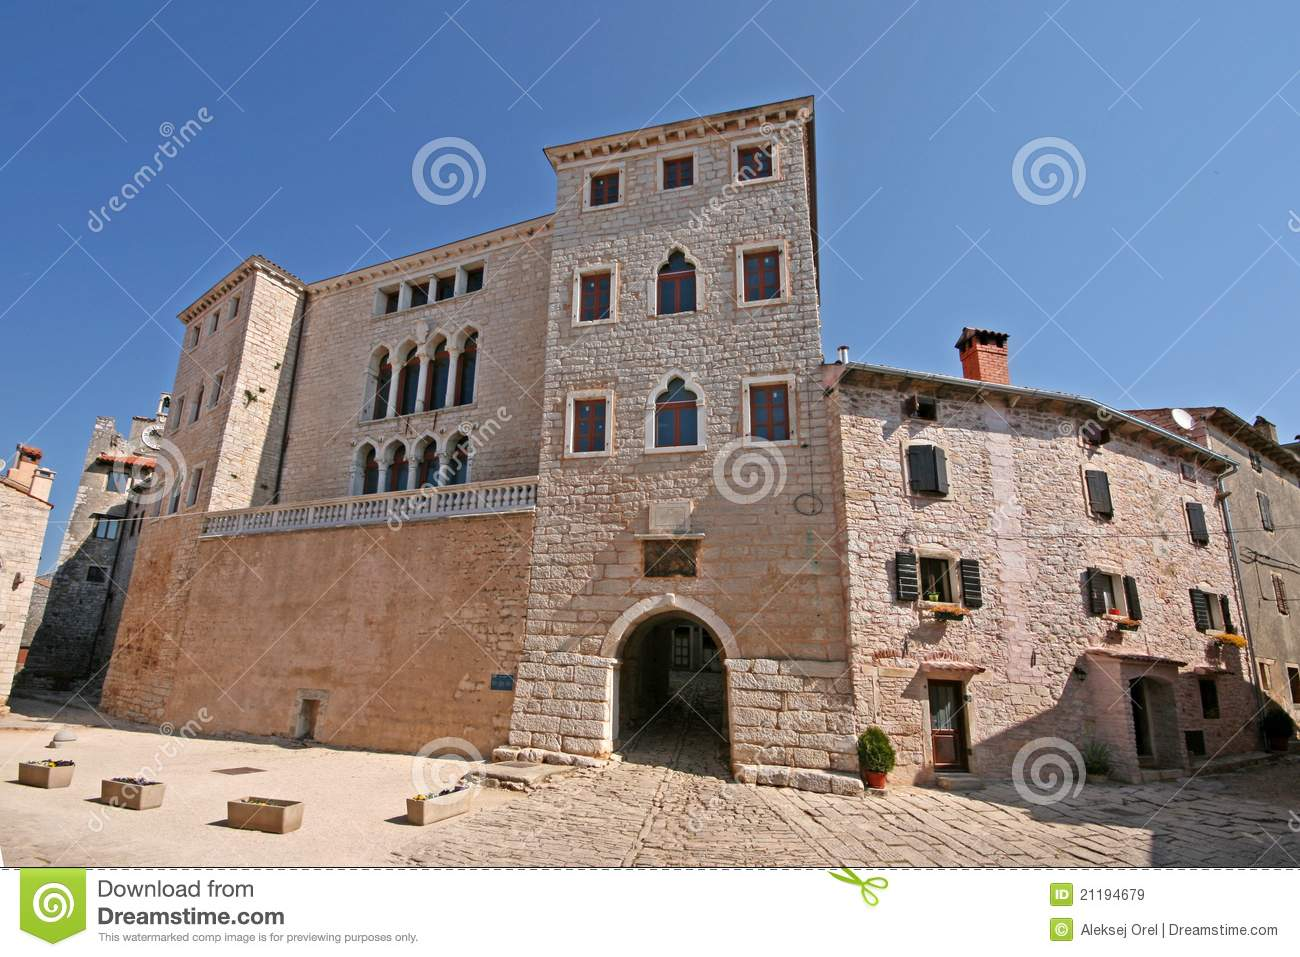 Castle Soardo Bembo in Bale